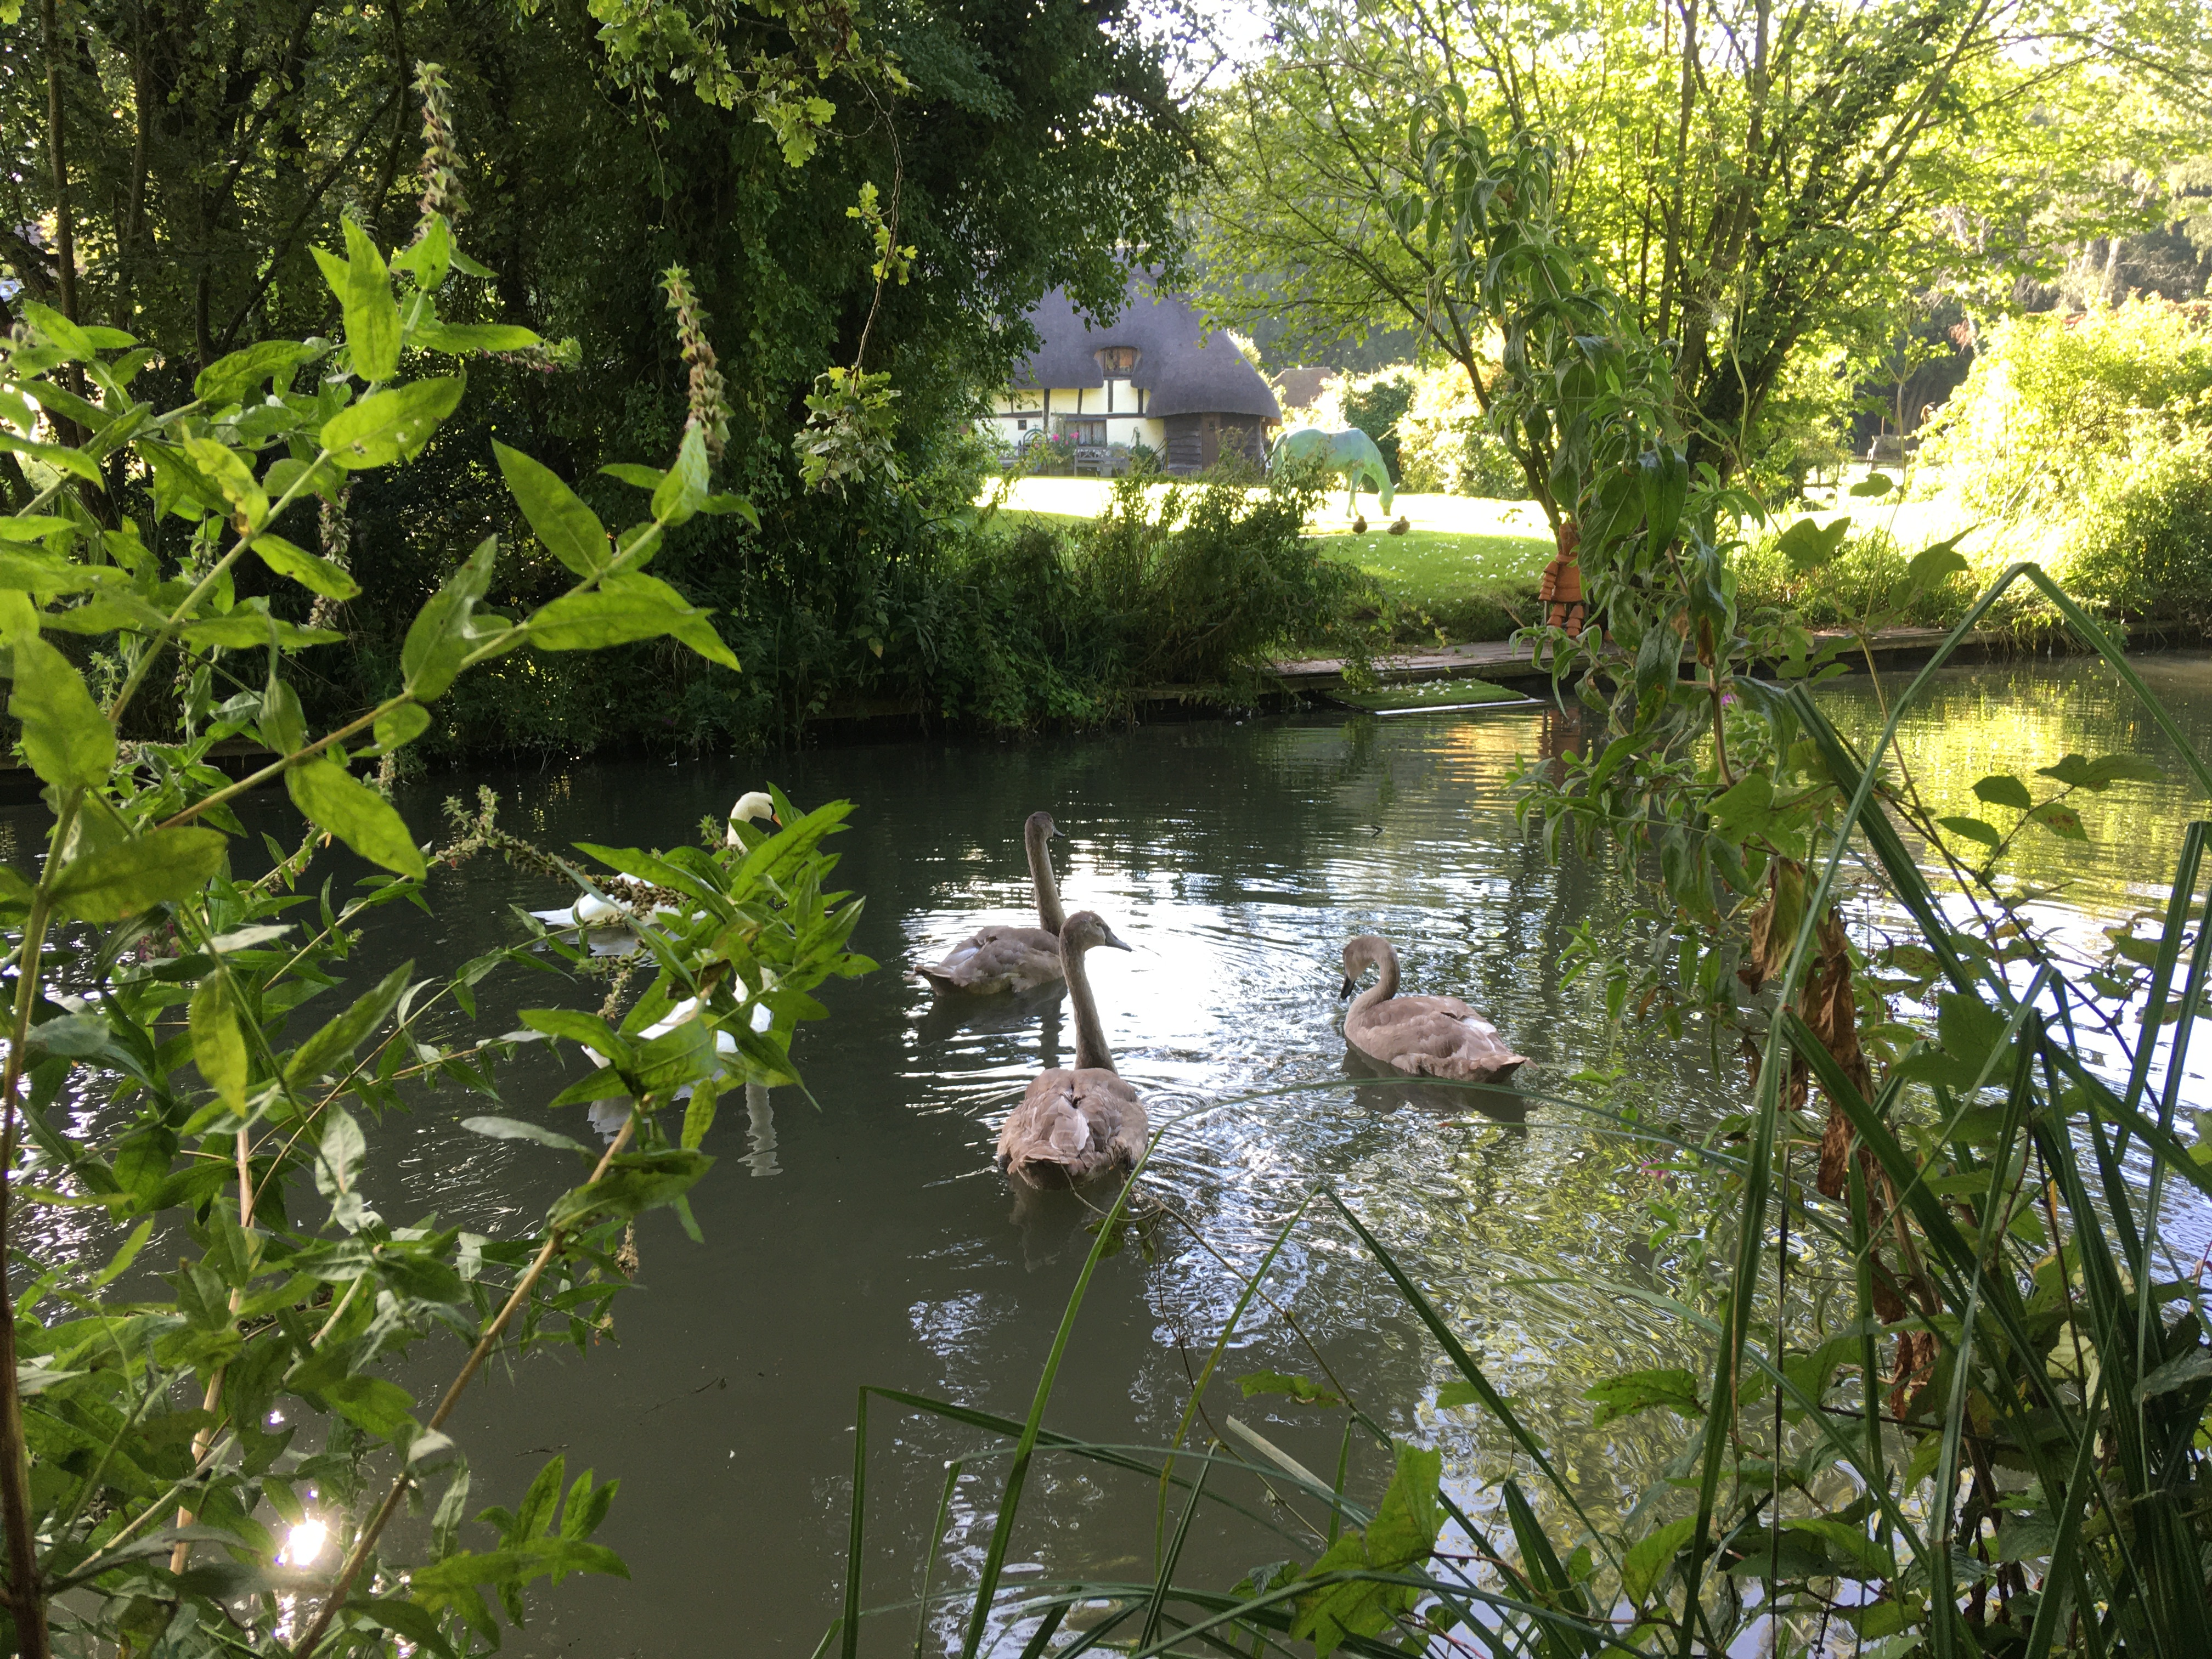 Cherie Cheetham - Blackwater Canal with